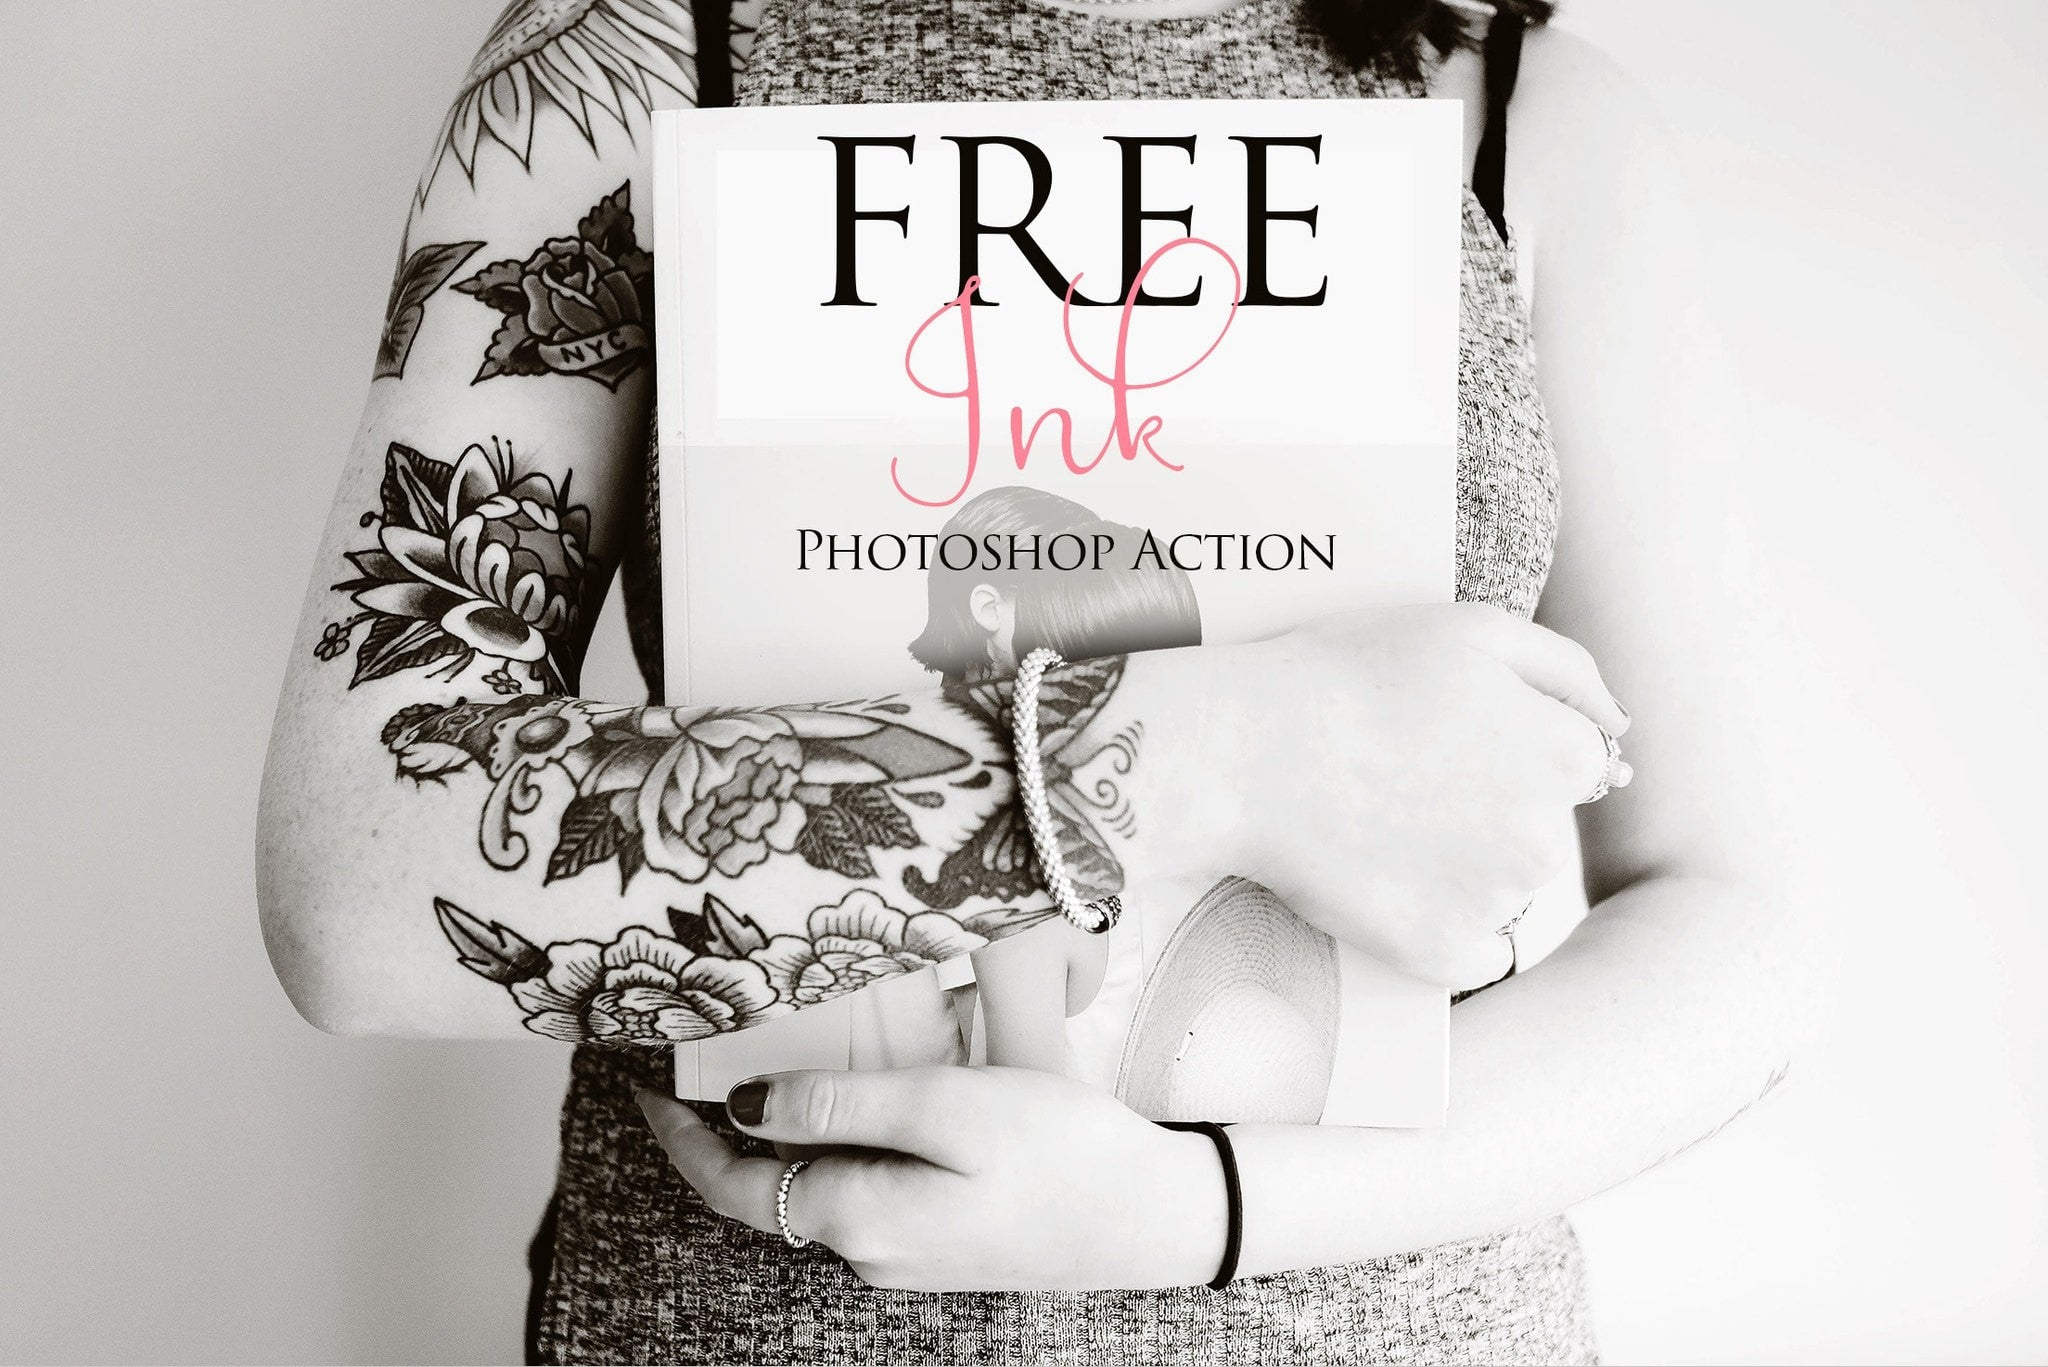 Free photoshop actions lightroom presets by uplift actions